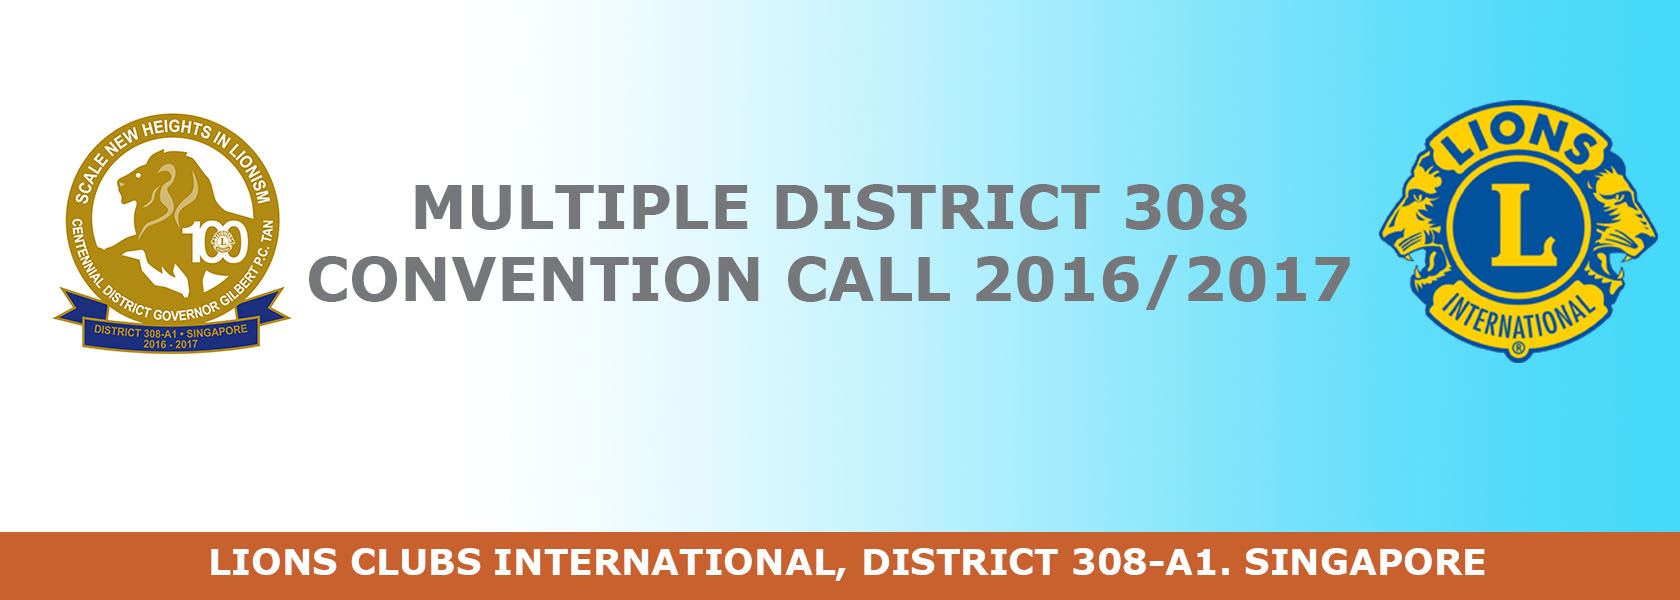 Convention-Call-2017